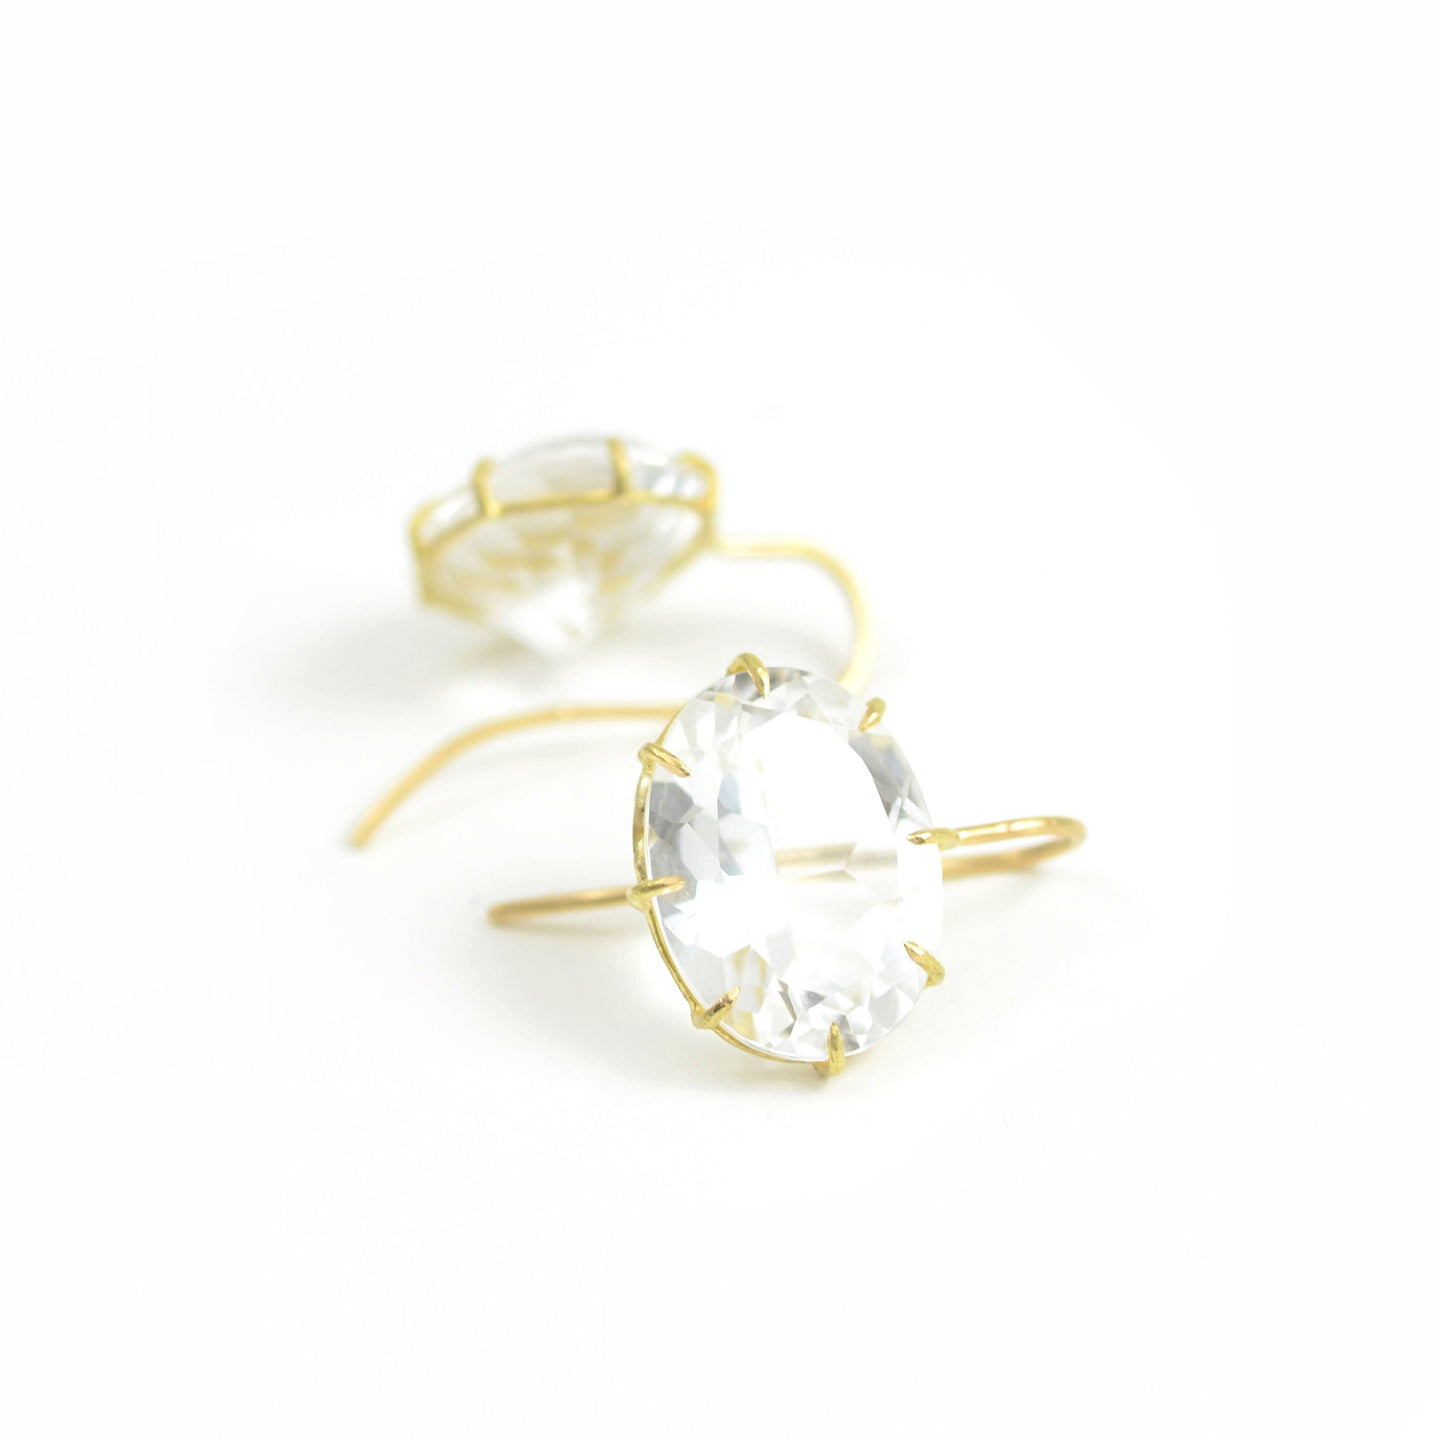 Rosanne Pugliese faceted white topaz east west earrings on 18kt yellow gold French wire